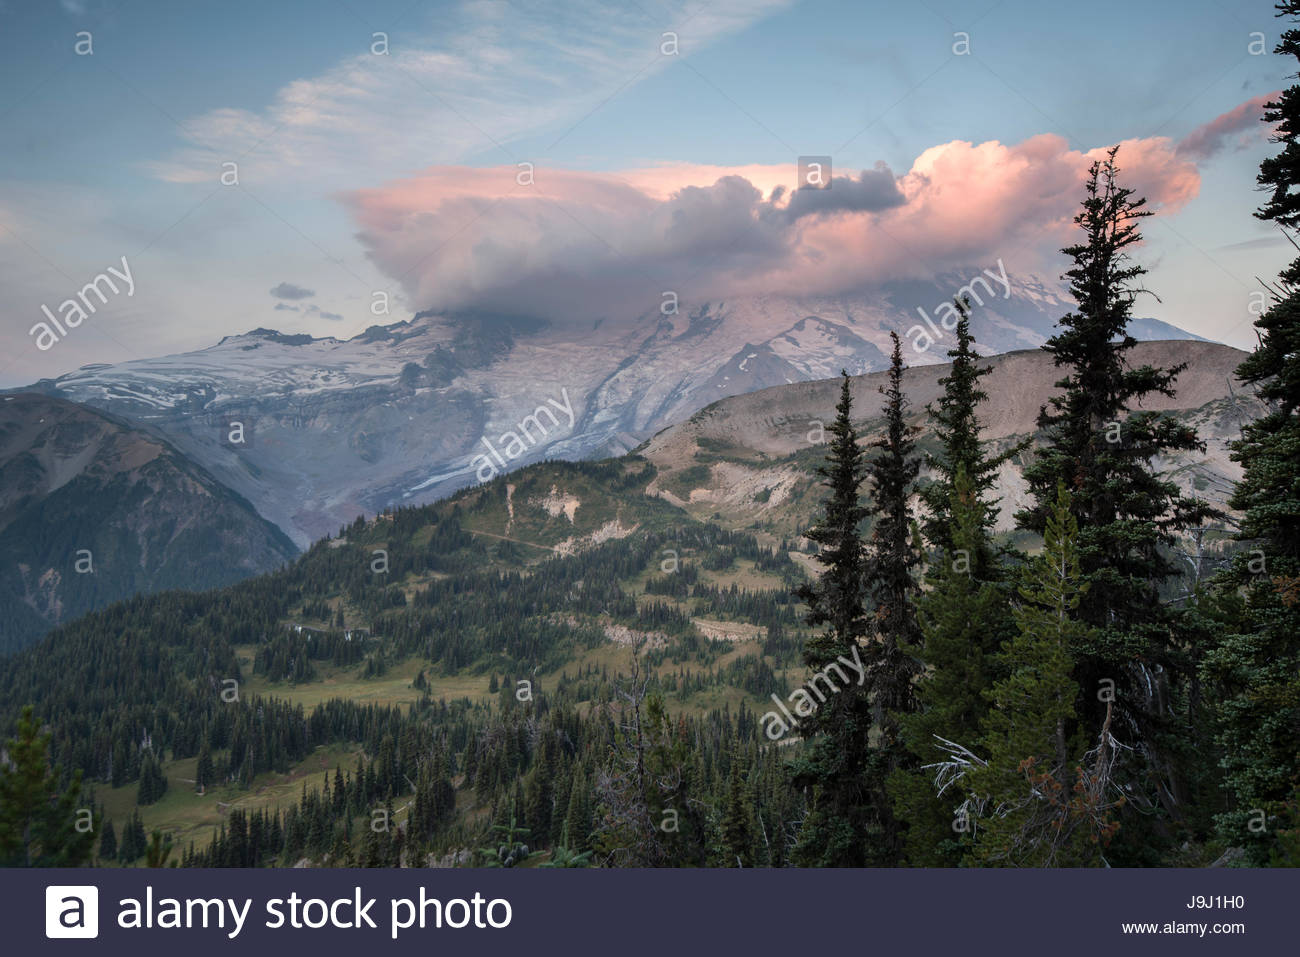 Lenticular clouds obscure the summit of Mount Rainier. - Stock Image